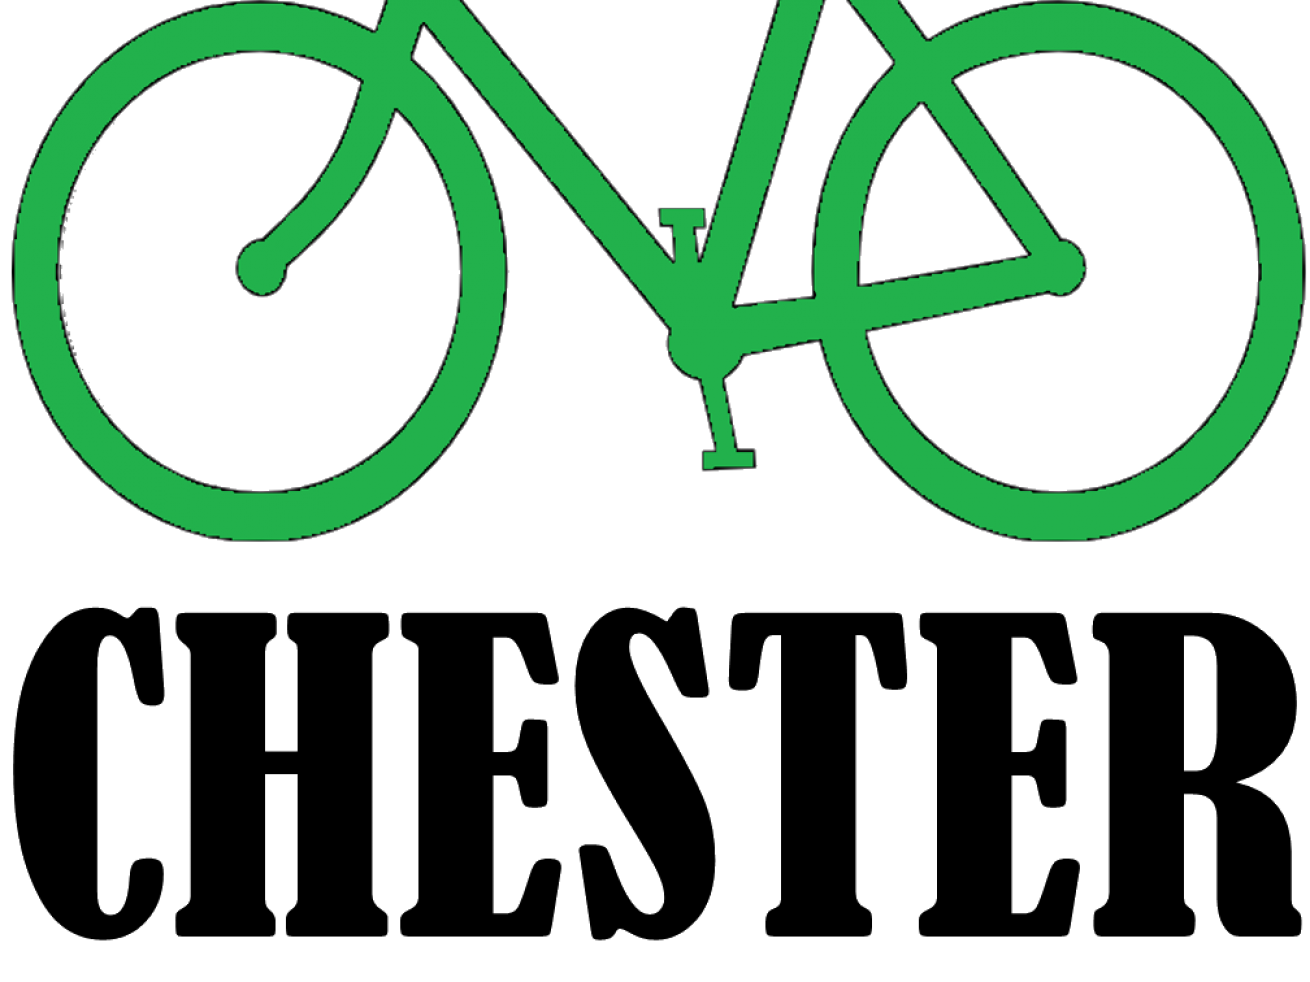 Chester Cycle Tours